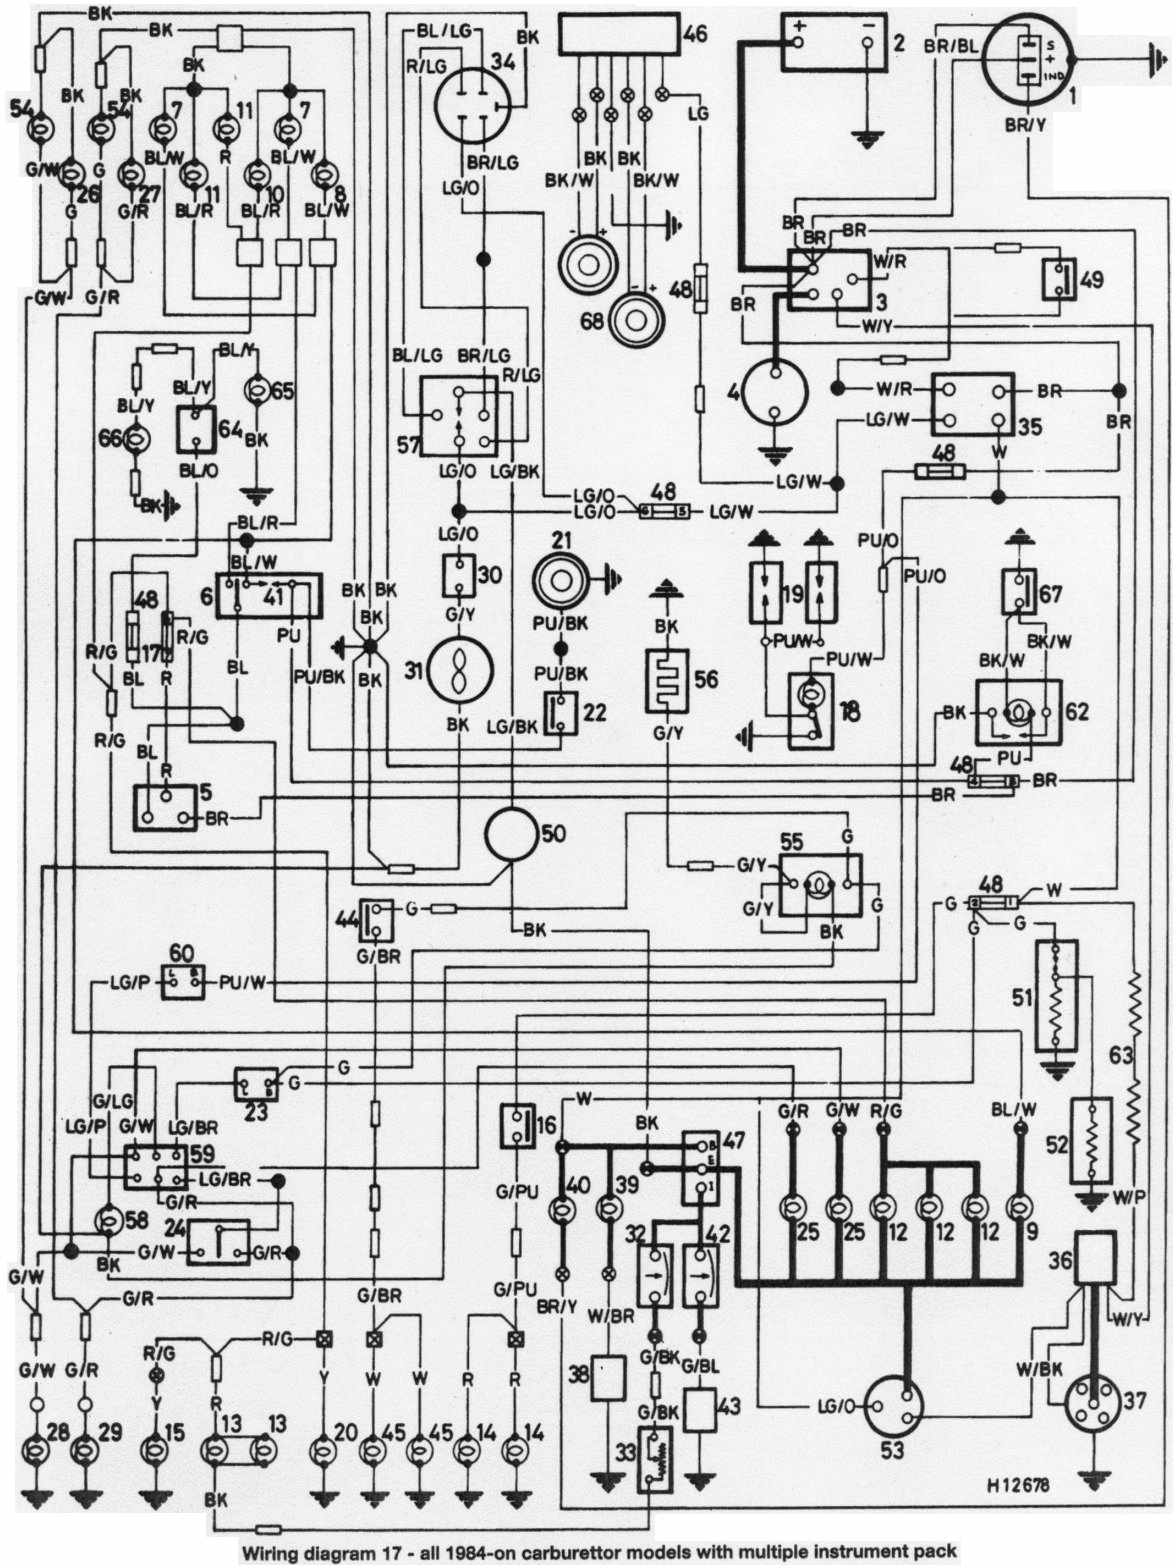 Honda Elite Wiring Diagram Page 4 And Schematics 1985 Dio Apartment Layout Planner Excellent Images Best Image